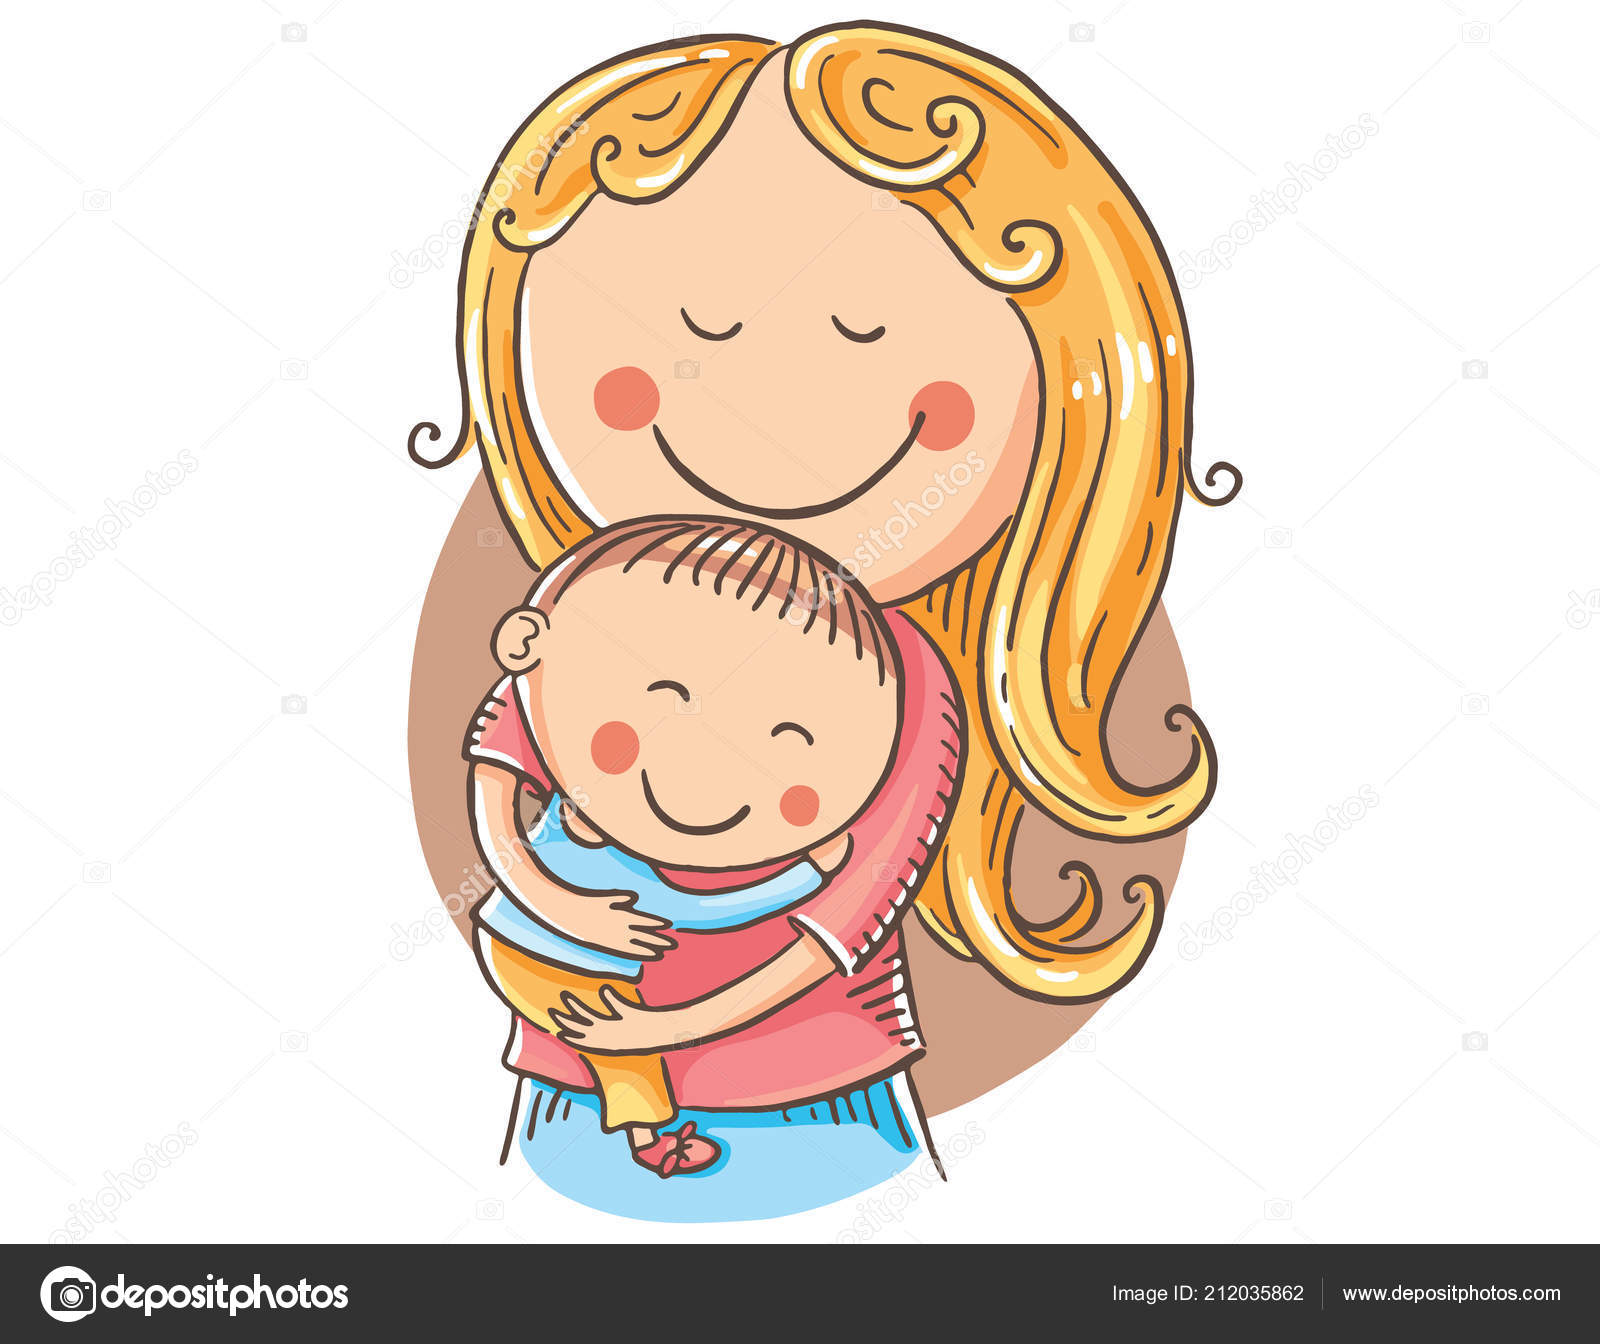 Clipart: mother and child.